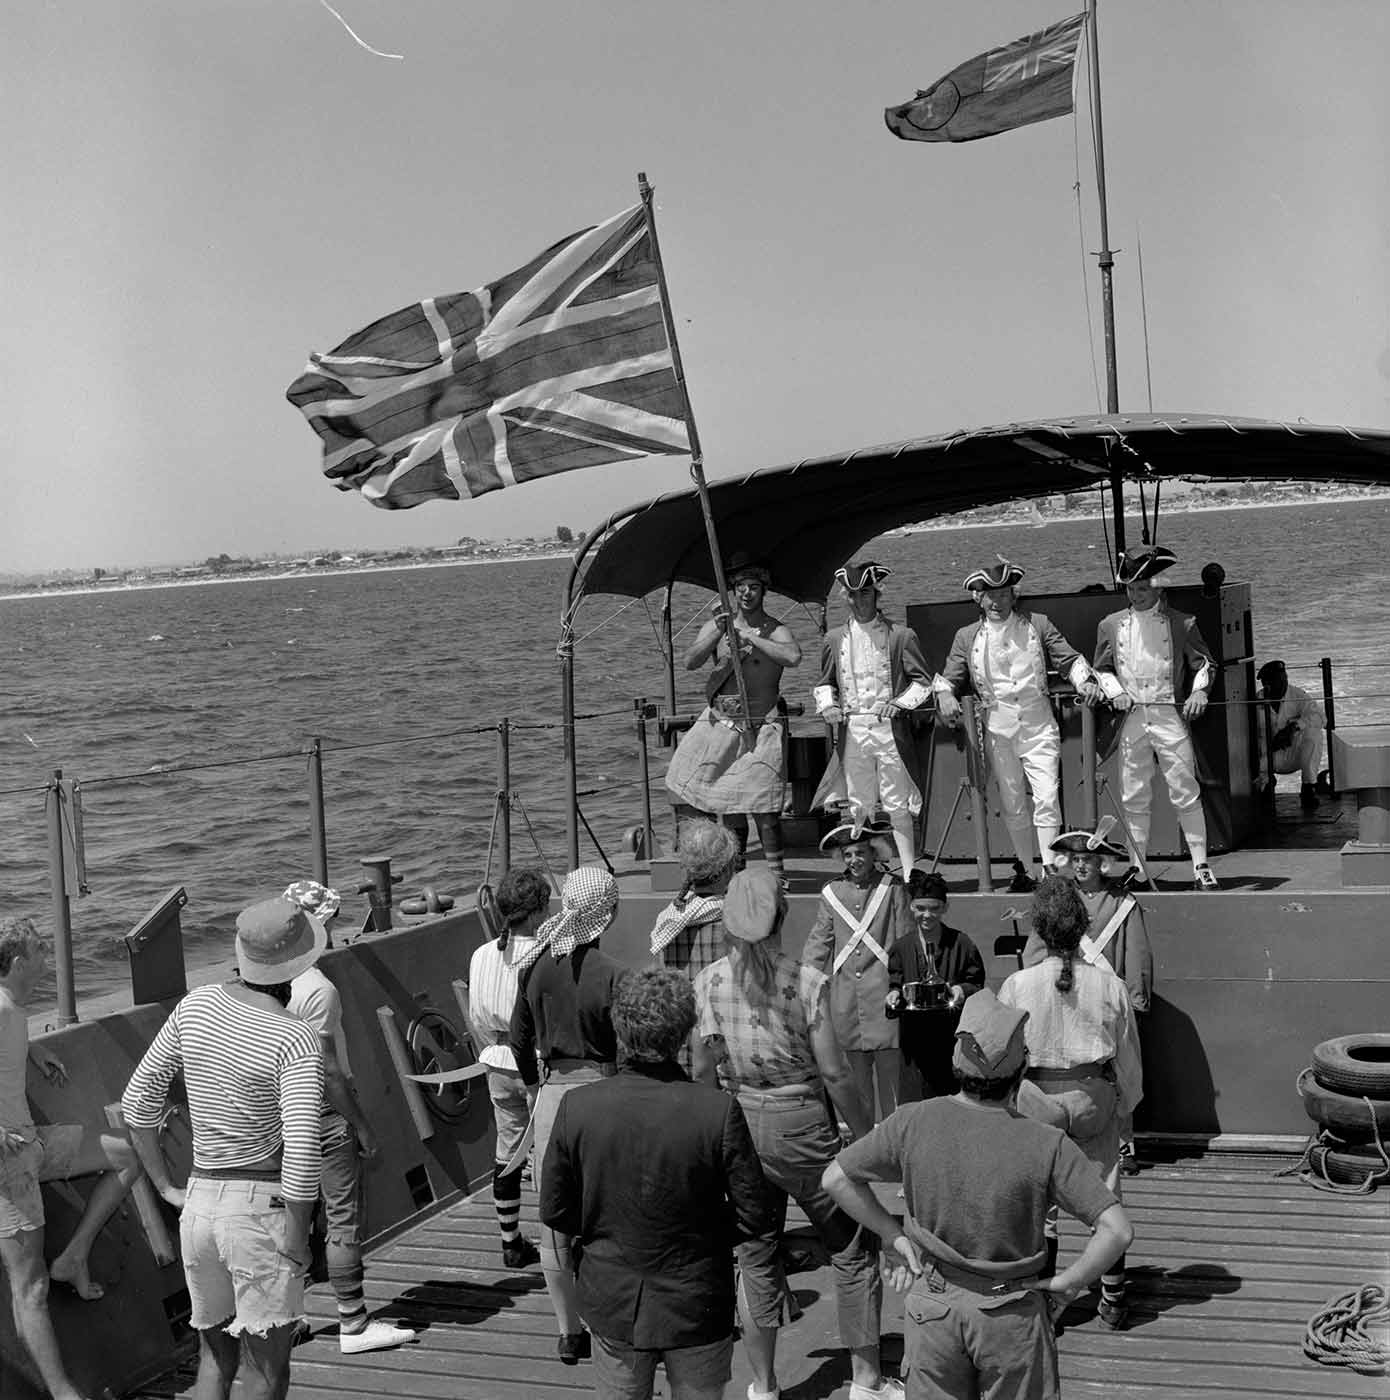 Black and white photo featuring people in a re-enactment of Captain Cook landing at Rockingham, March 1970 - click to view larger image